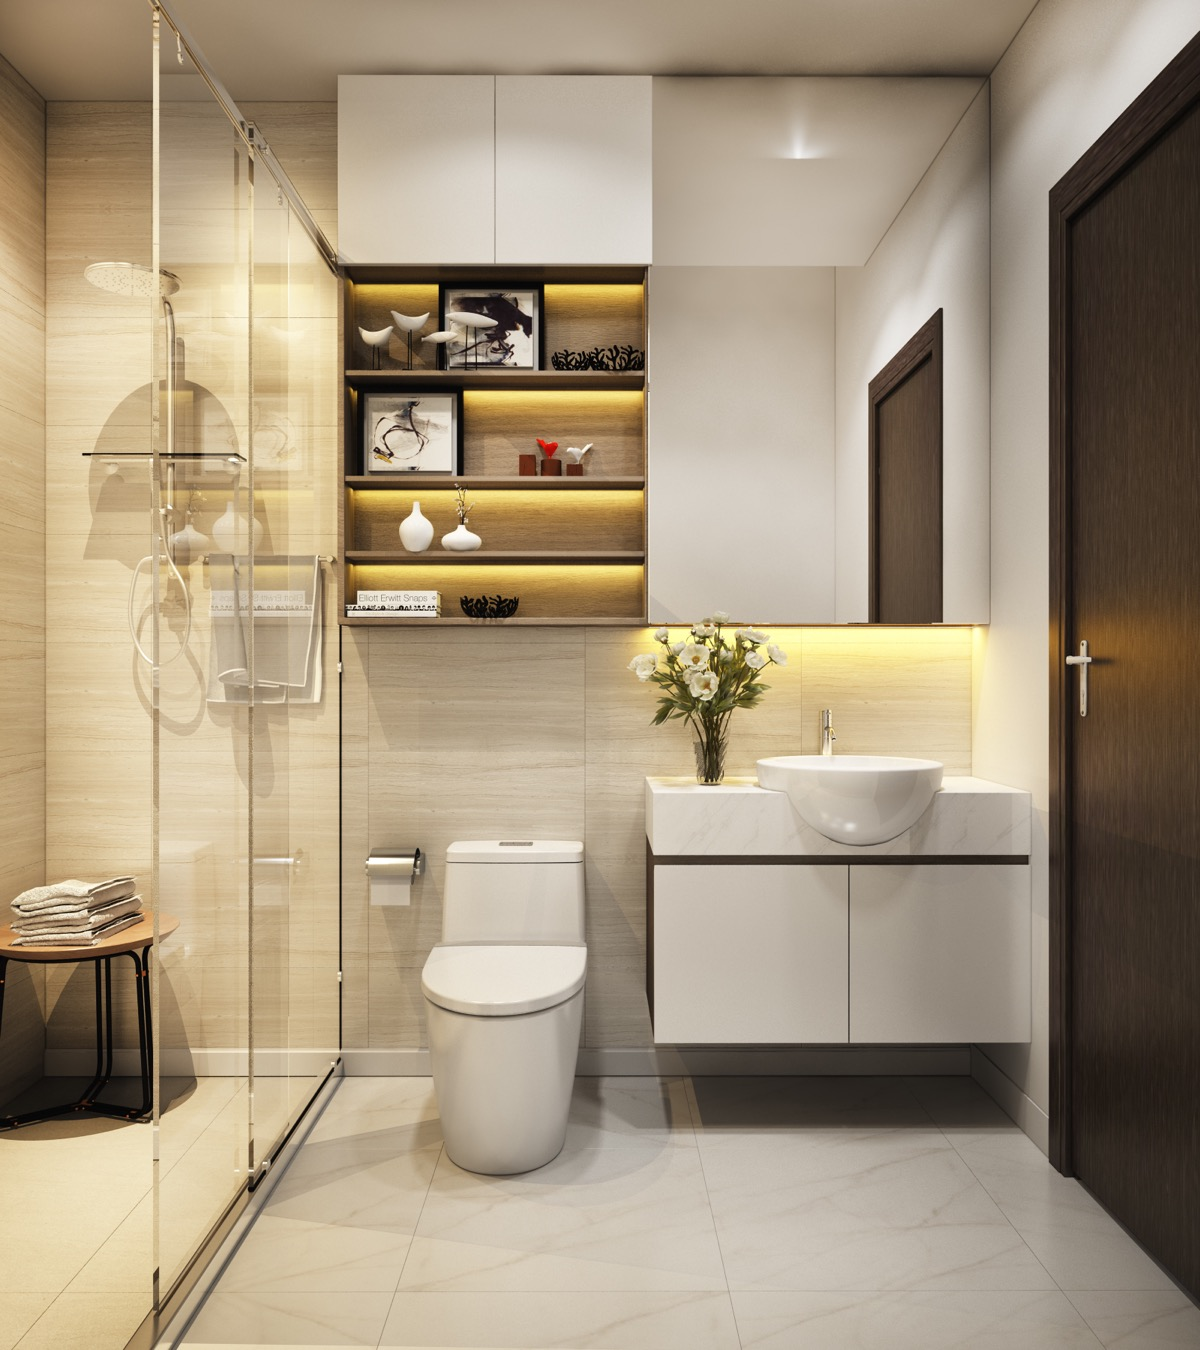 Best Minimalist Bathroom Designs: 40 Modern Minimalist Style Bathrooms